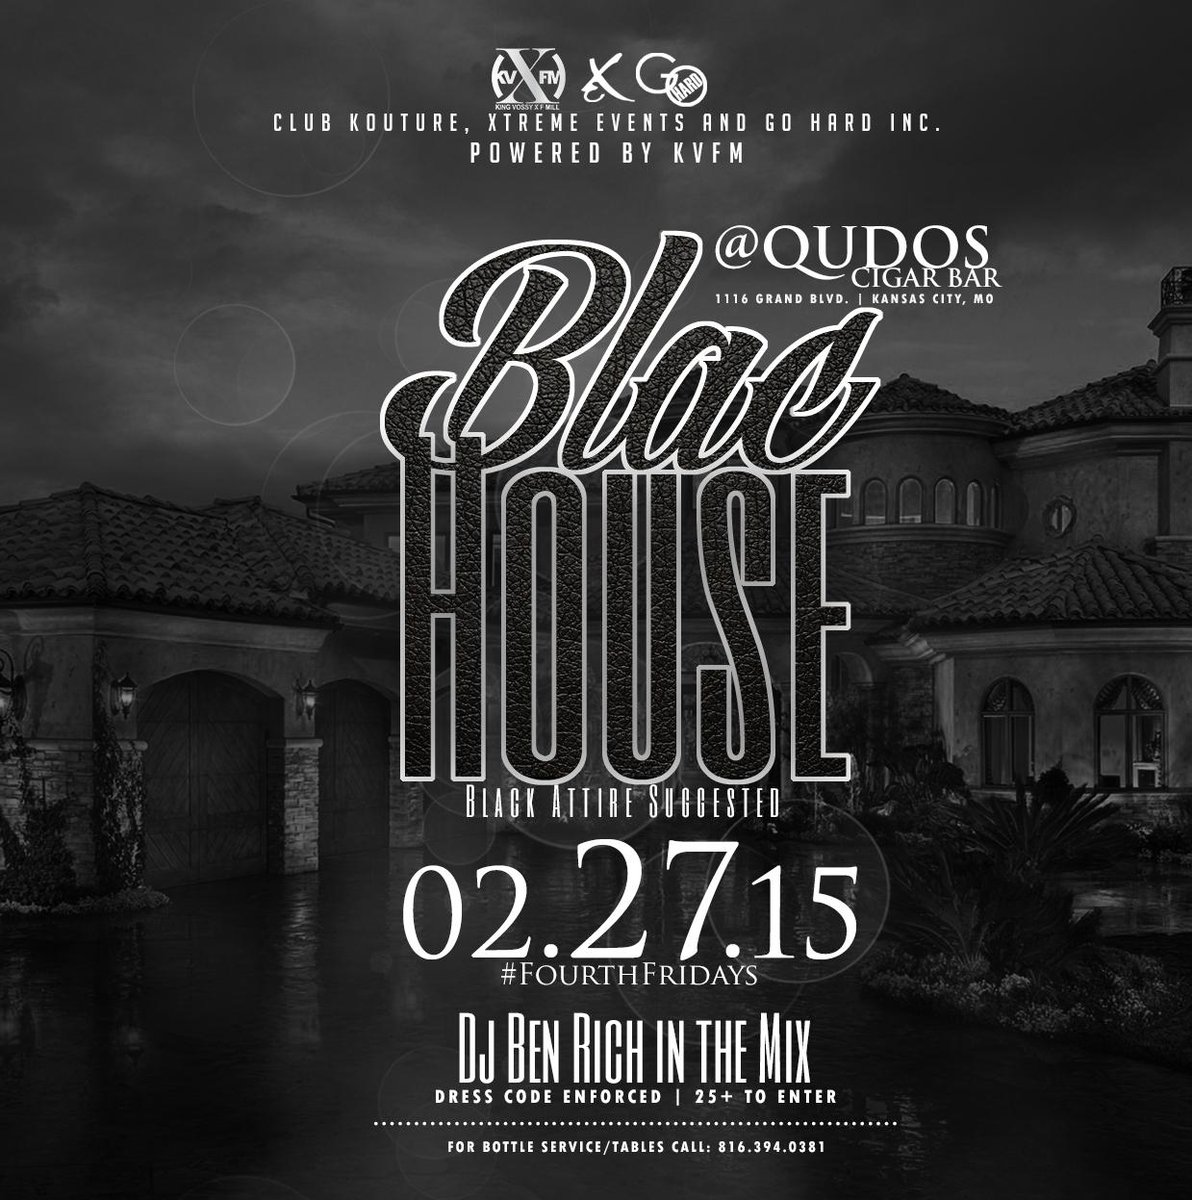 NEXT FRI 2.27 #BlacHouse #EverythingBlac  #4thFriday #25andUp ll Sounds by @BenRichPro http://t.co/e0PRcDTqkw